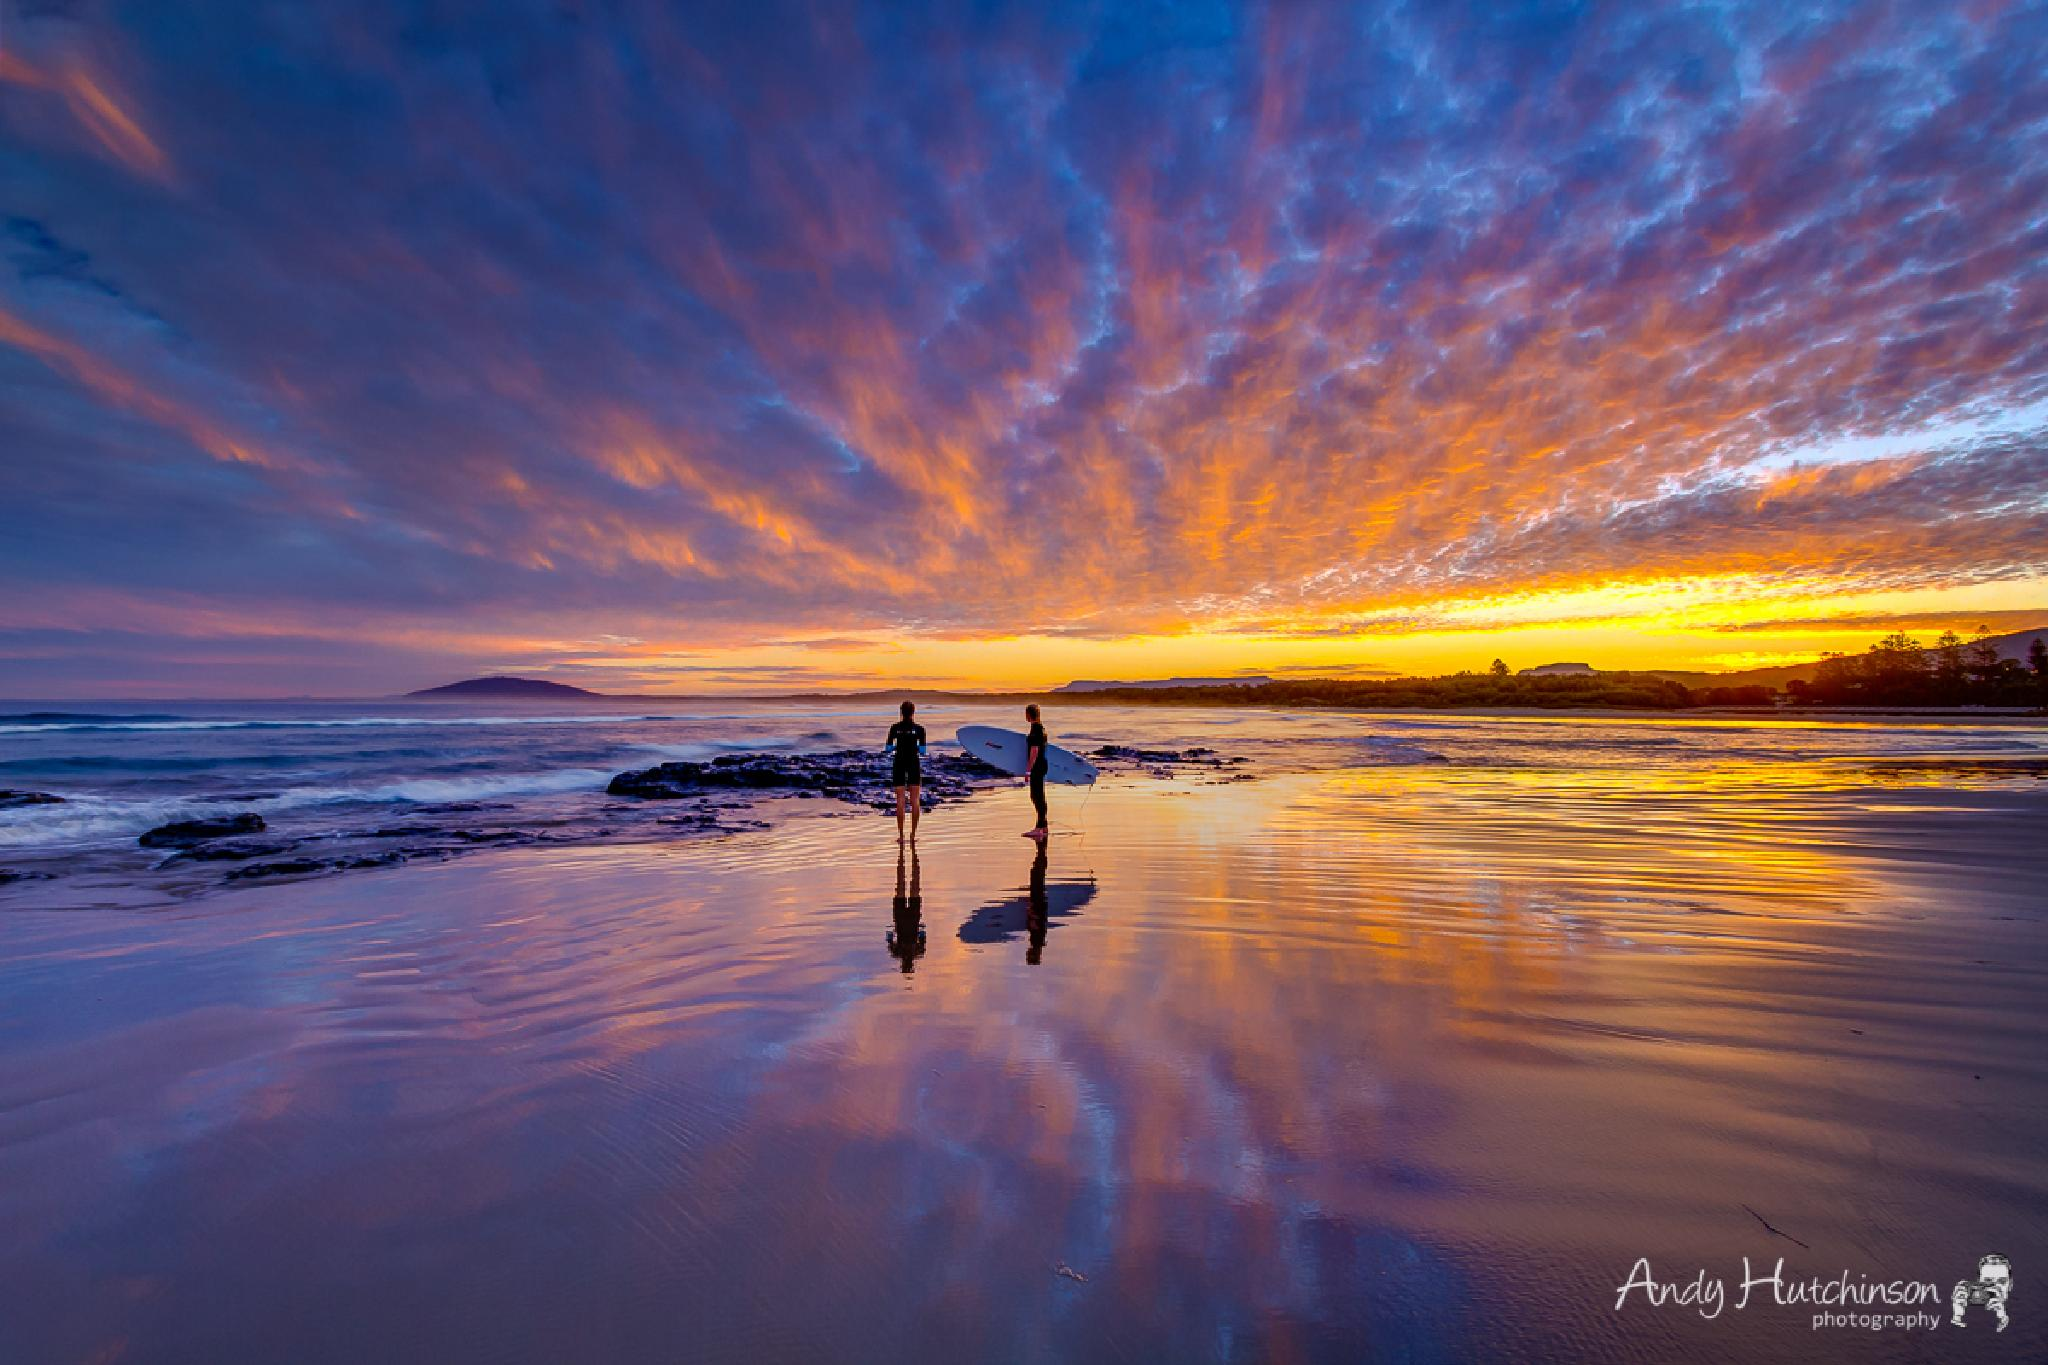 The Last Surfers by Andy Hutchinson